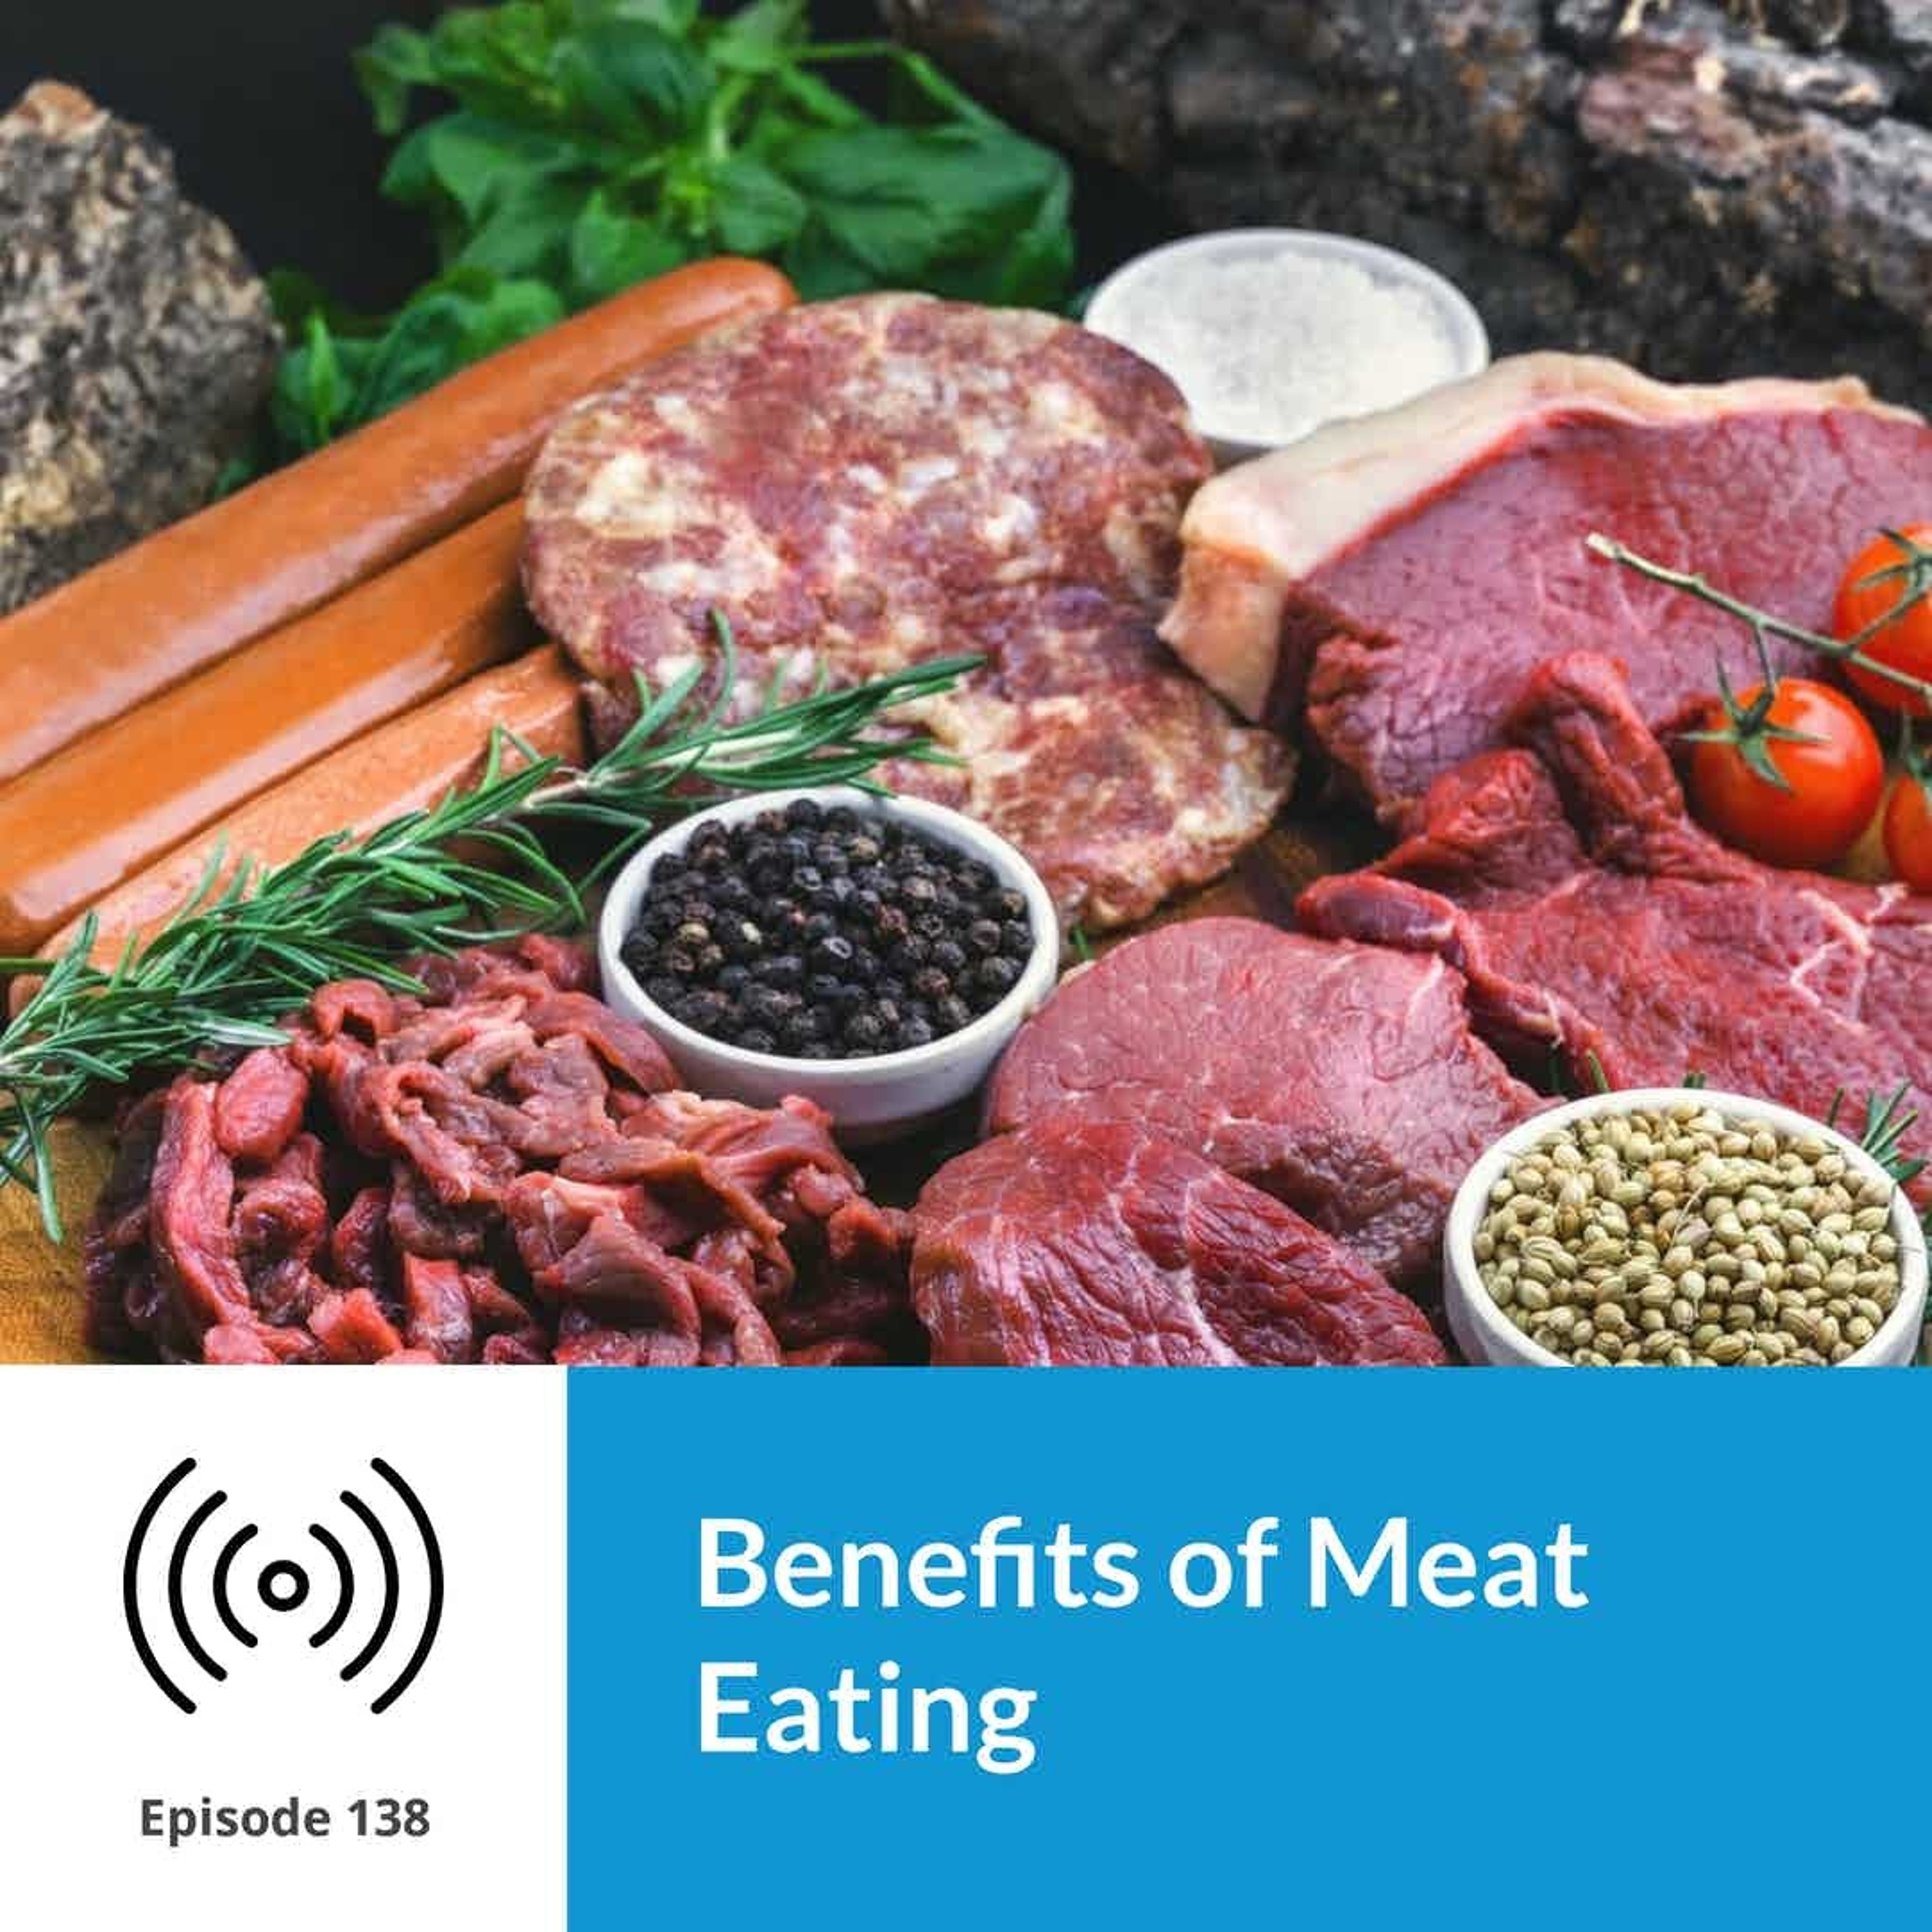 Episode 138 Benefits of Eating Meat